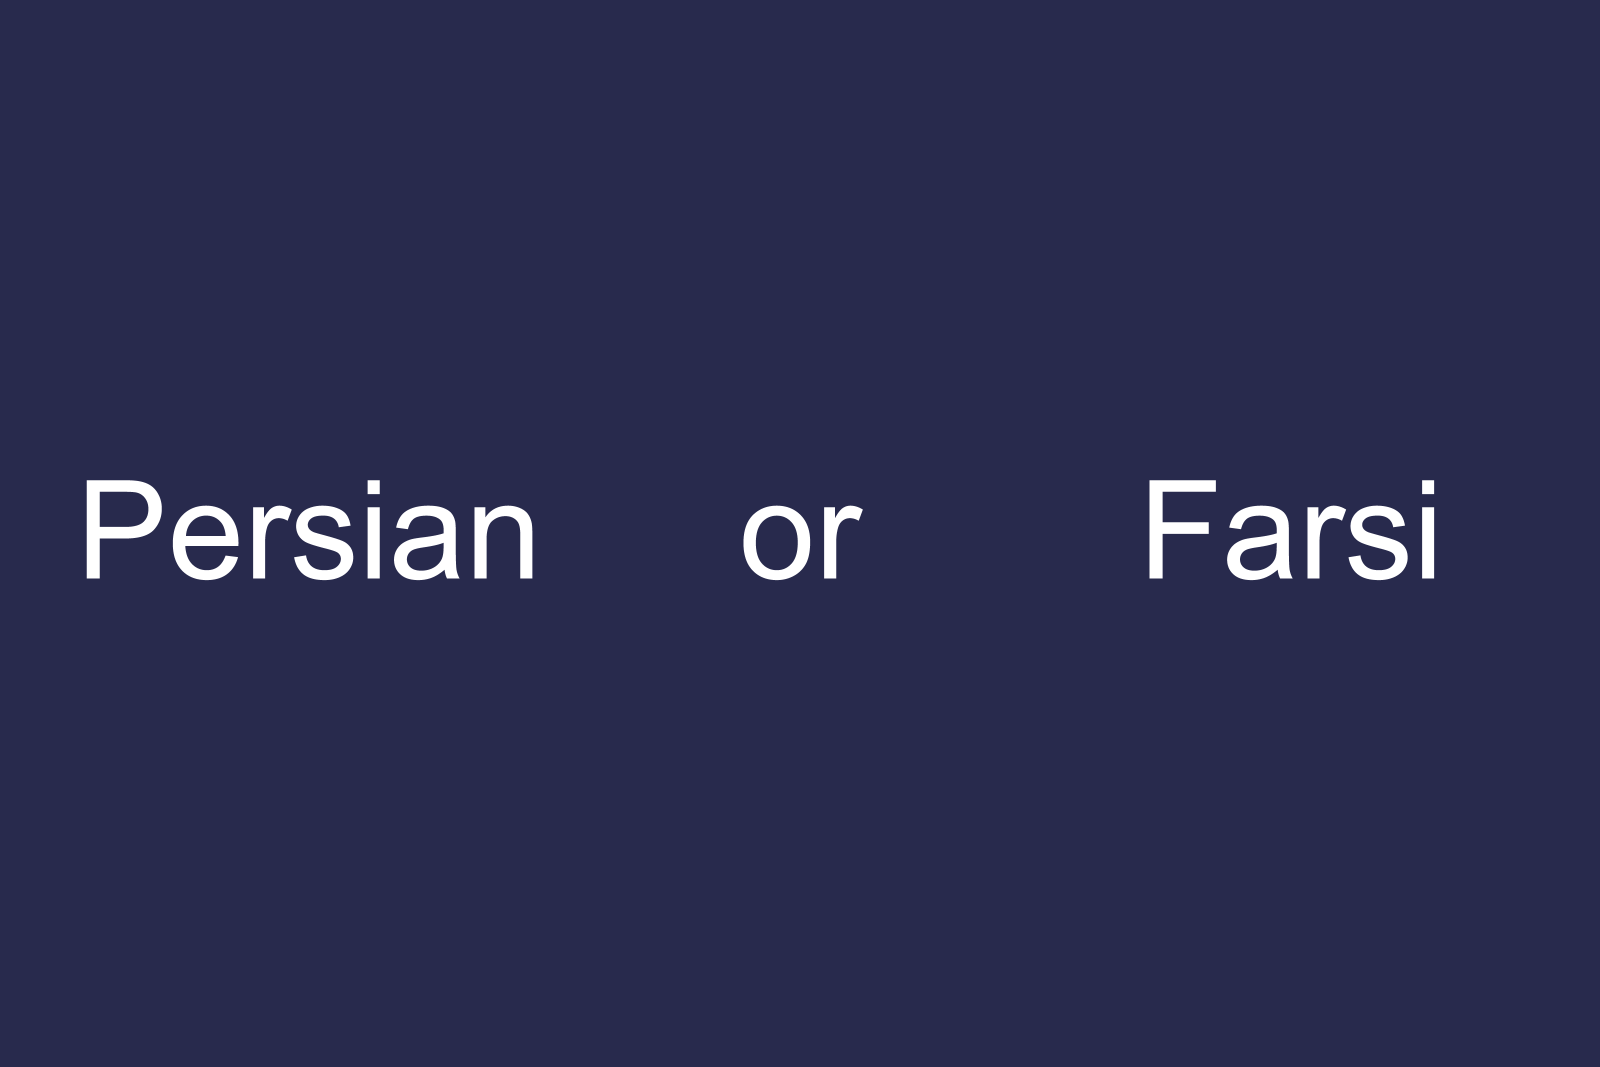 What is the difference between Persian and Farsi?